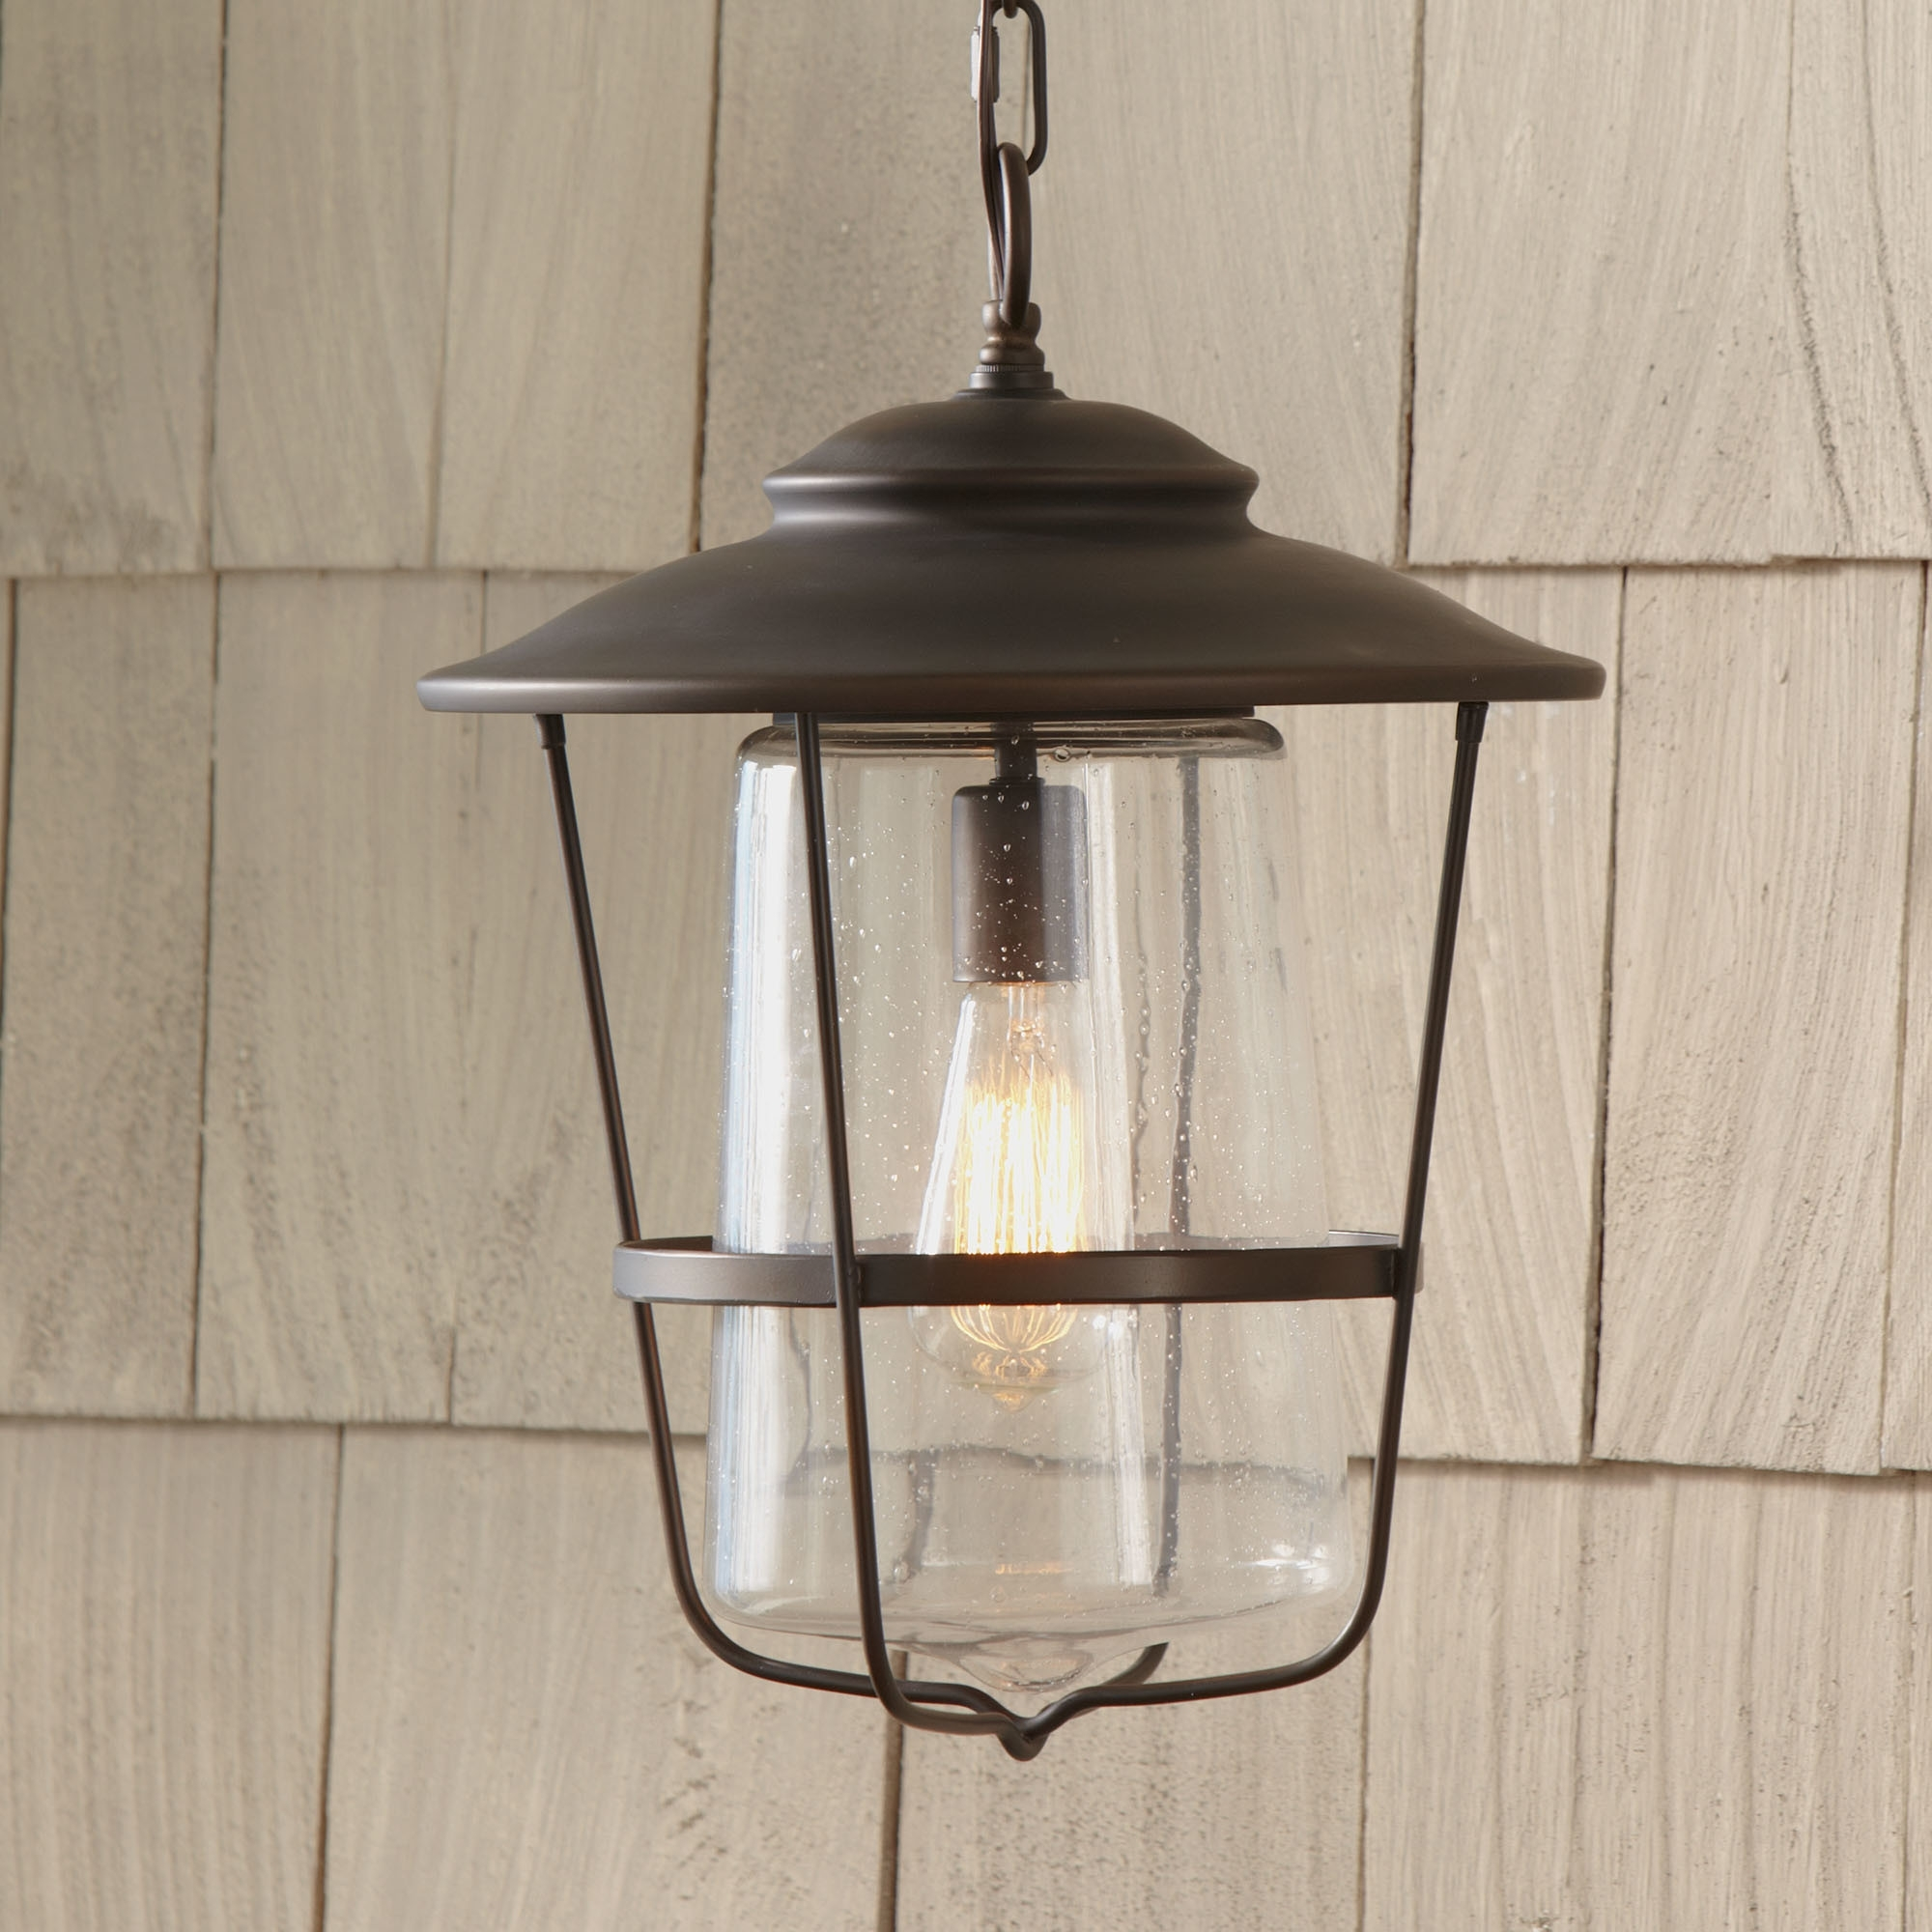 Outdoor Hanging Lights Wayfair Remington Lantern ~ Loversiq Intended For Most Up To Date Inexpensive Outdoor Hanging Lights (View 14 of 20)